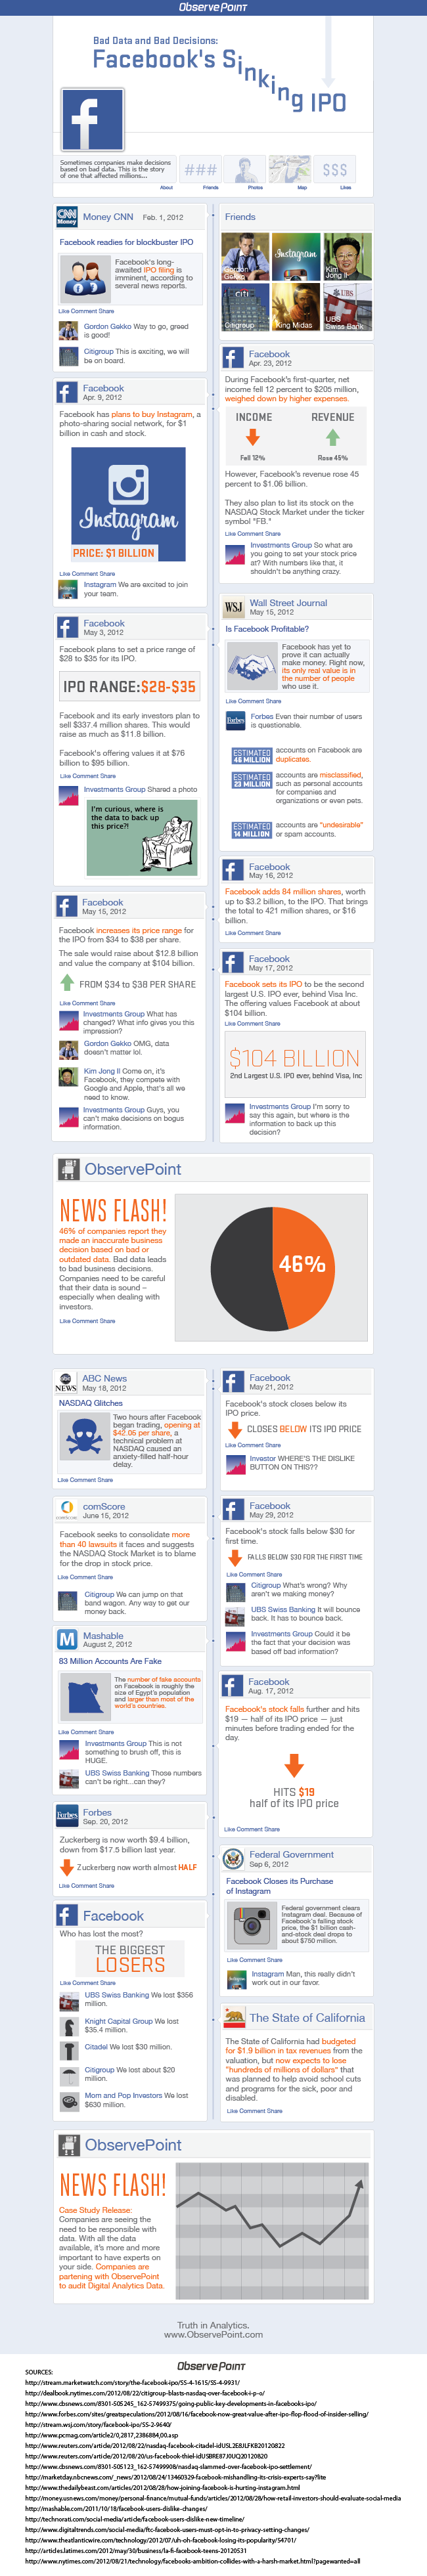 http://beta.www.observepoint.com/infographics/bad-data-and-bad-decisions-facebooks-sinking-ipo